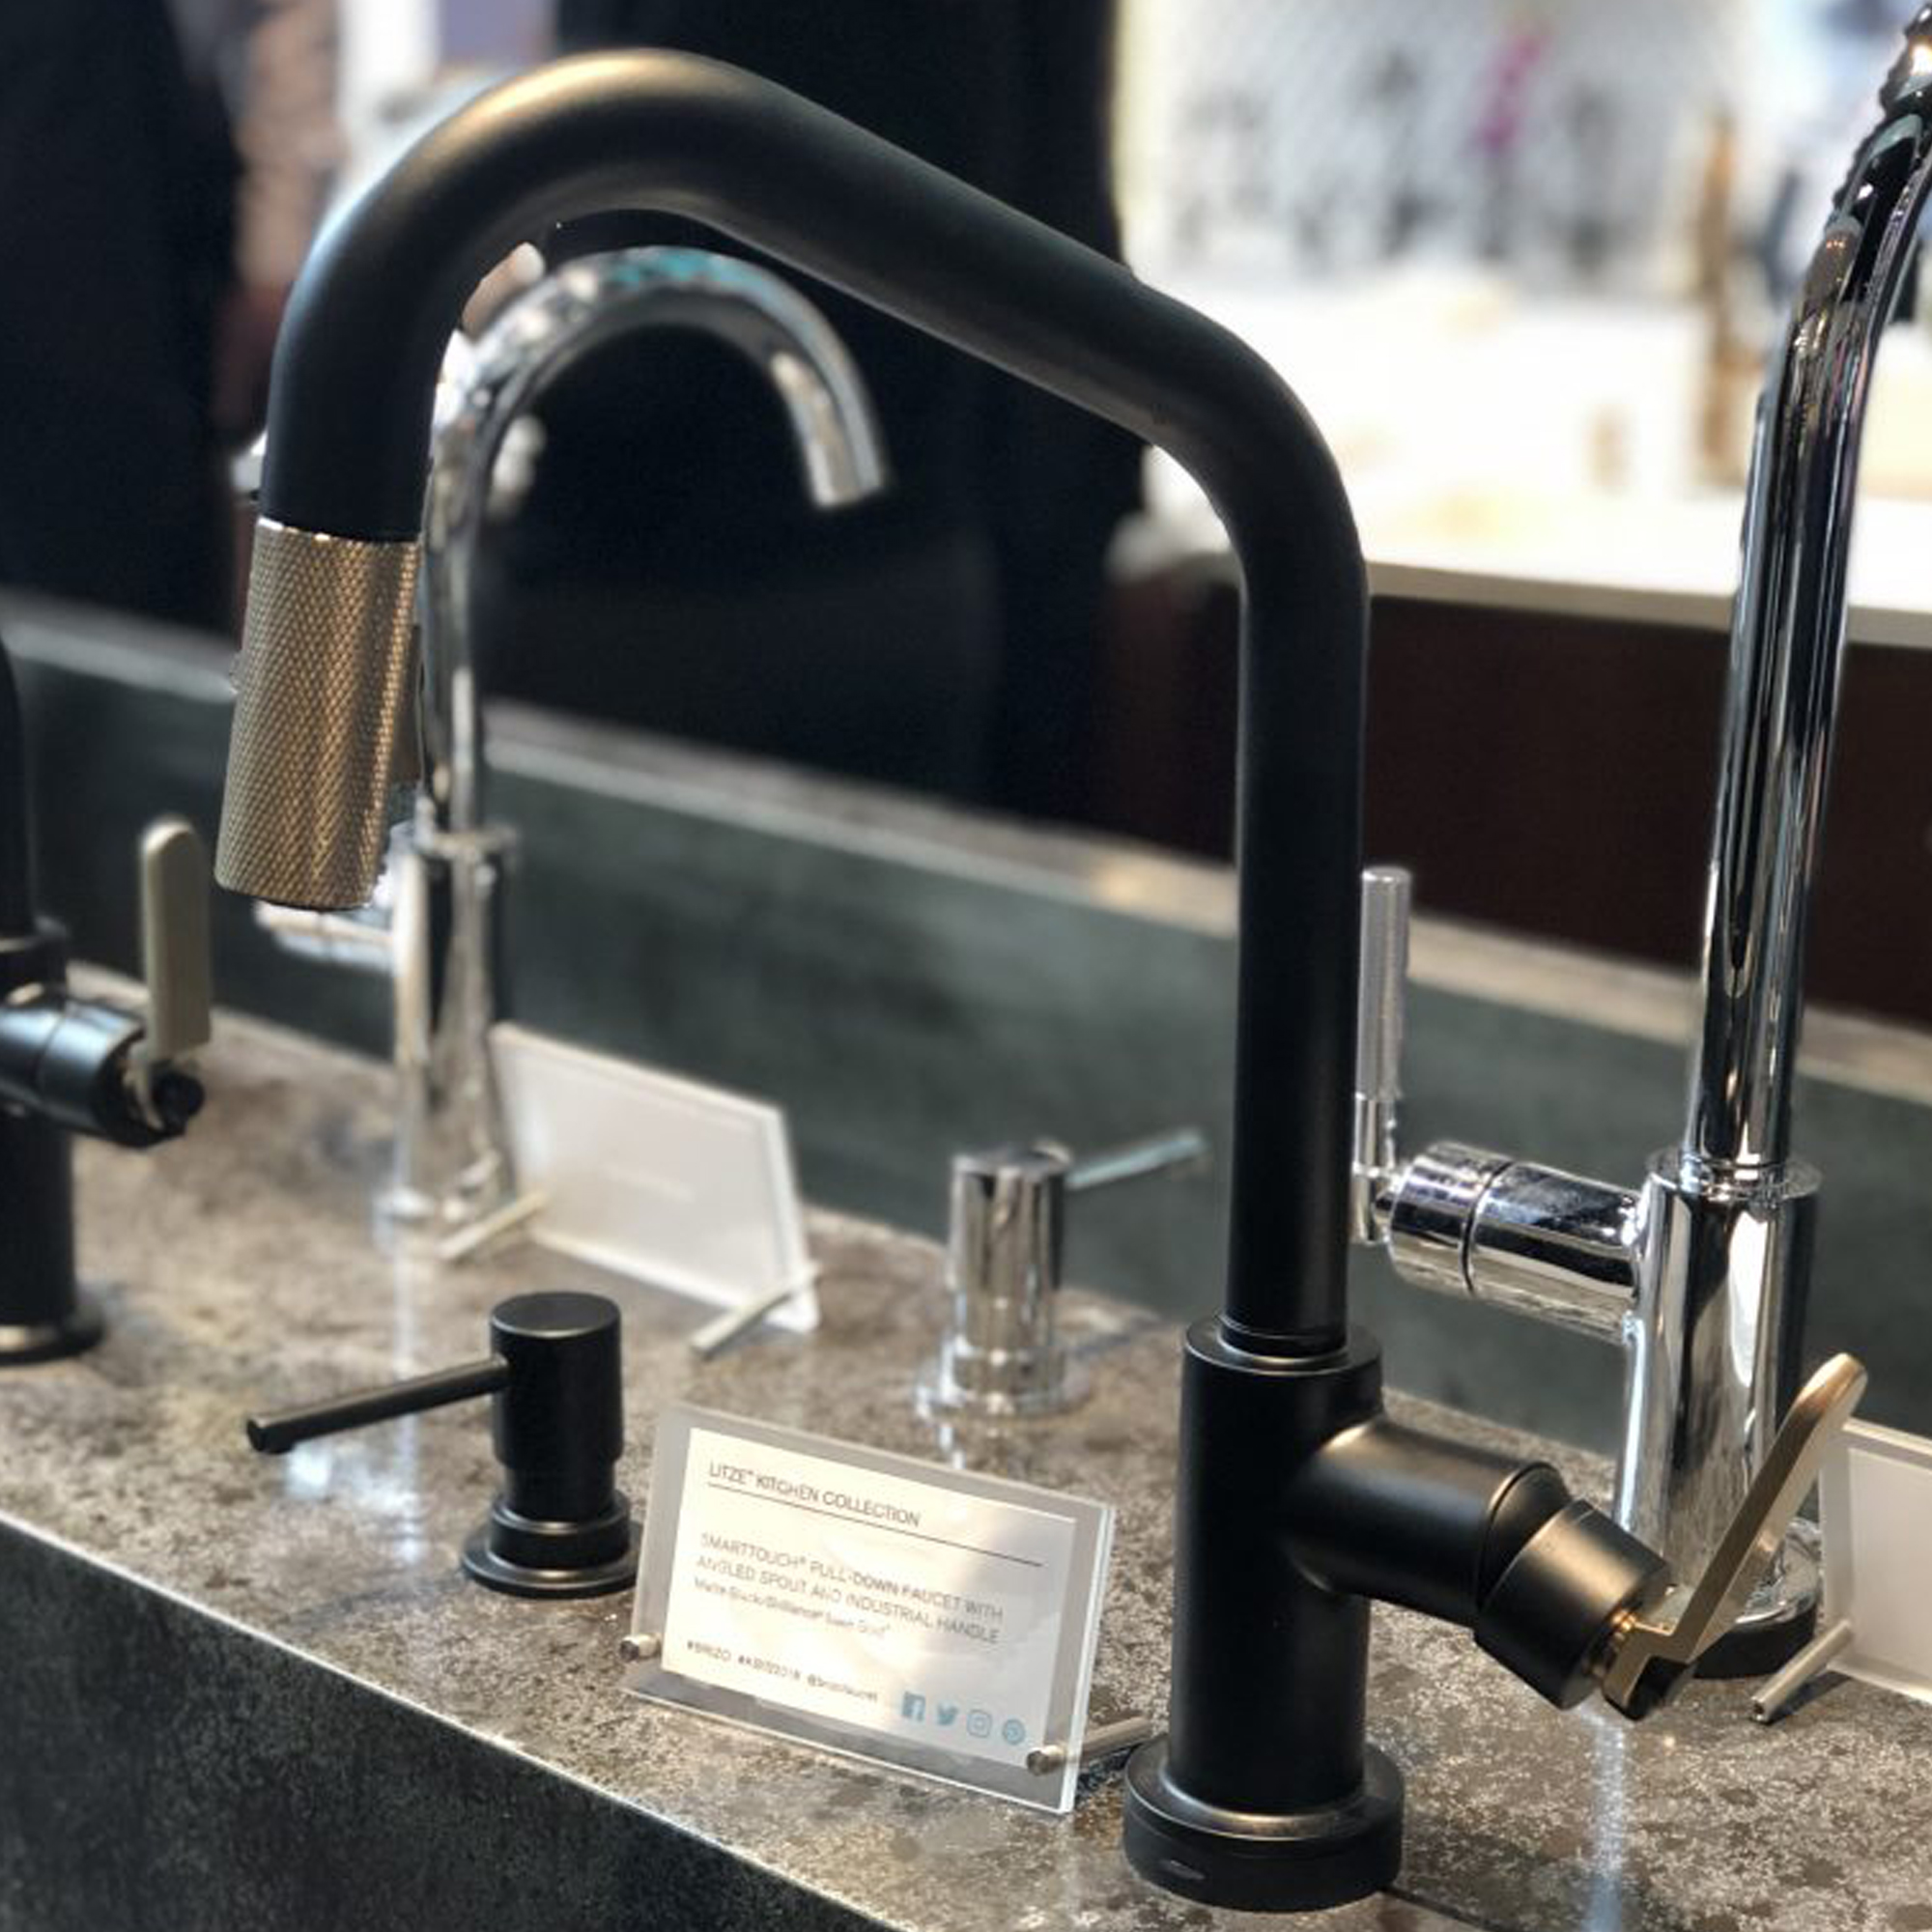 KBIS 2018 Day 1 Recap | Inspired To Style